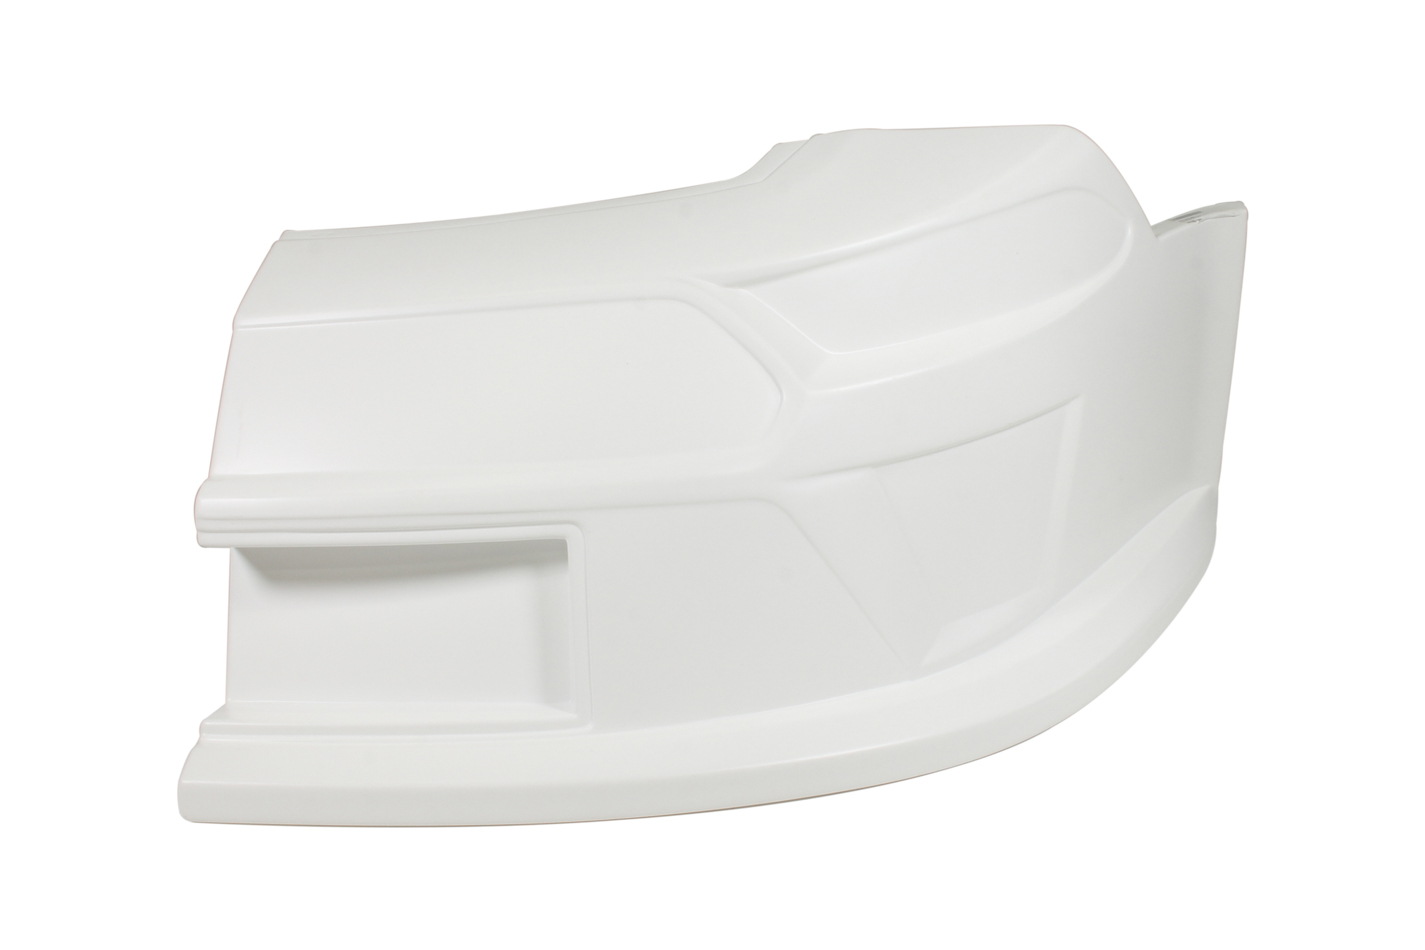 Fivestar 11322-41051-WL Nose, Driver Side, Molded Plastic, White, Ford Mustang, 2019 Late Model, Each